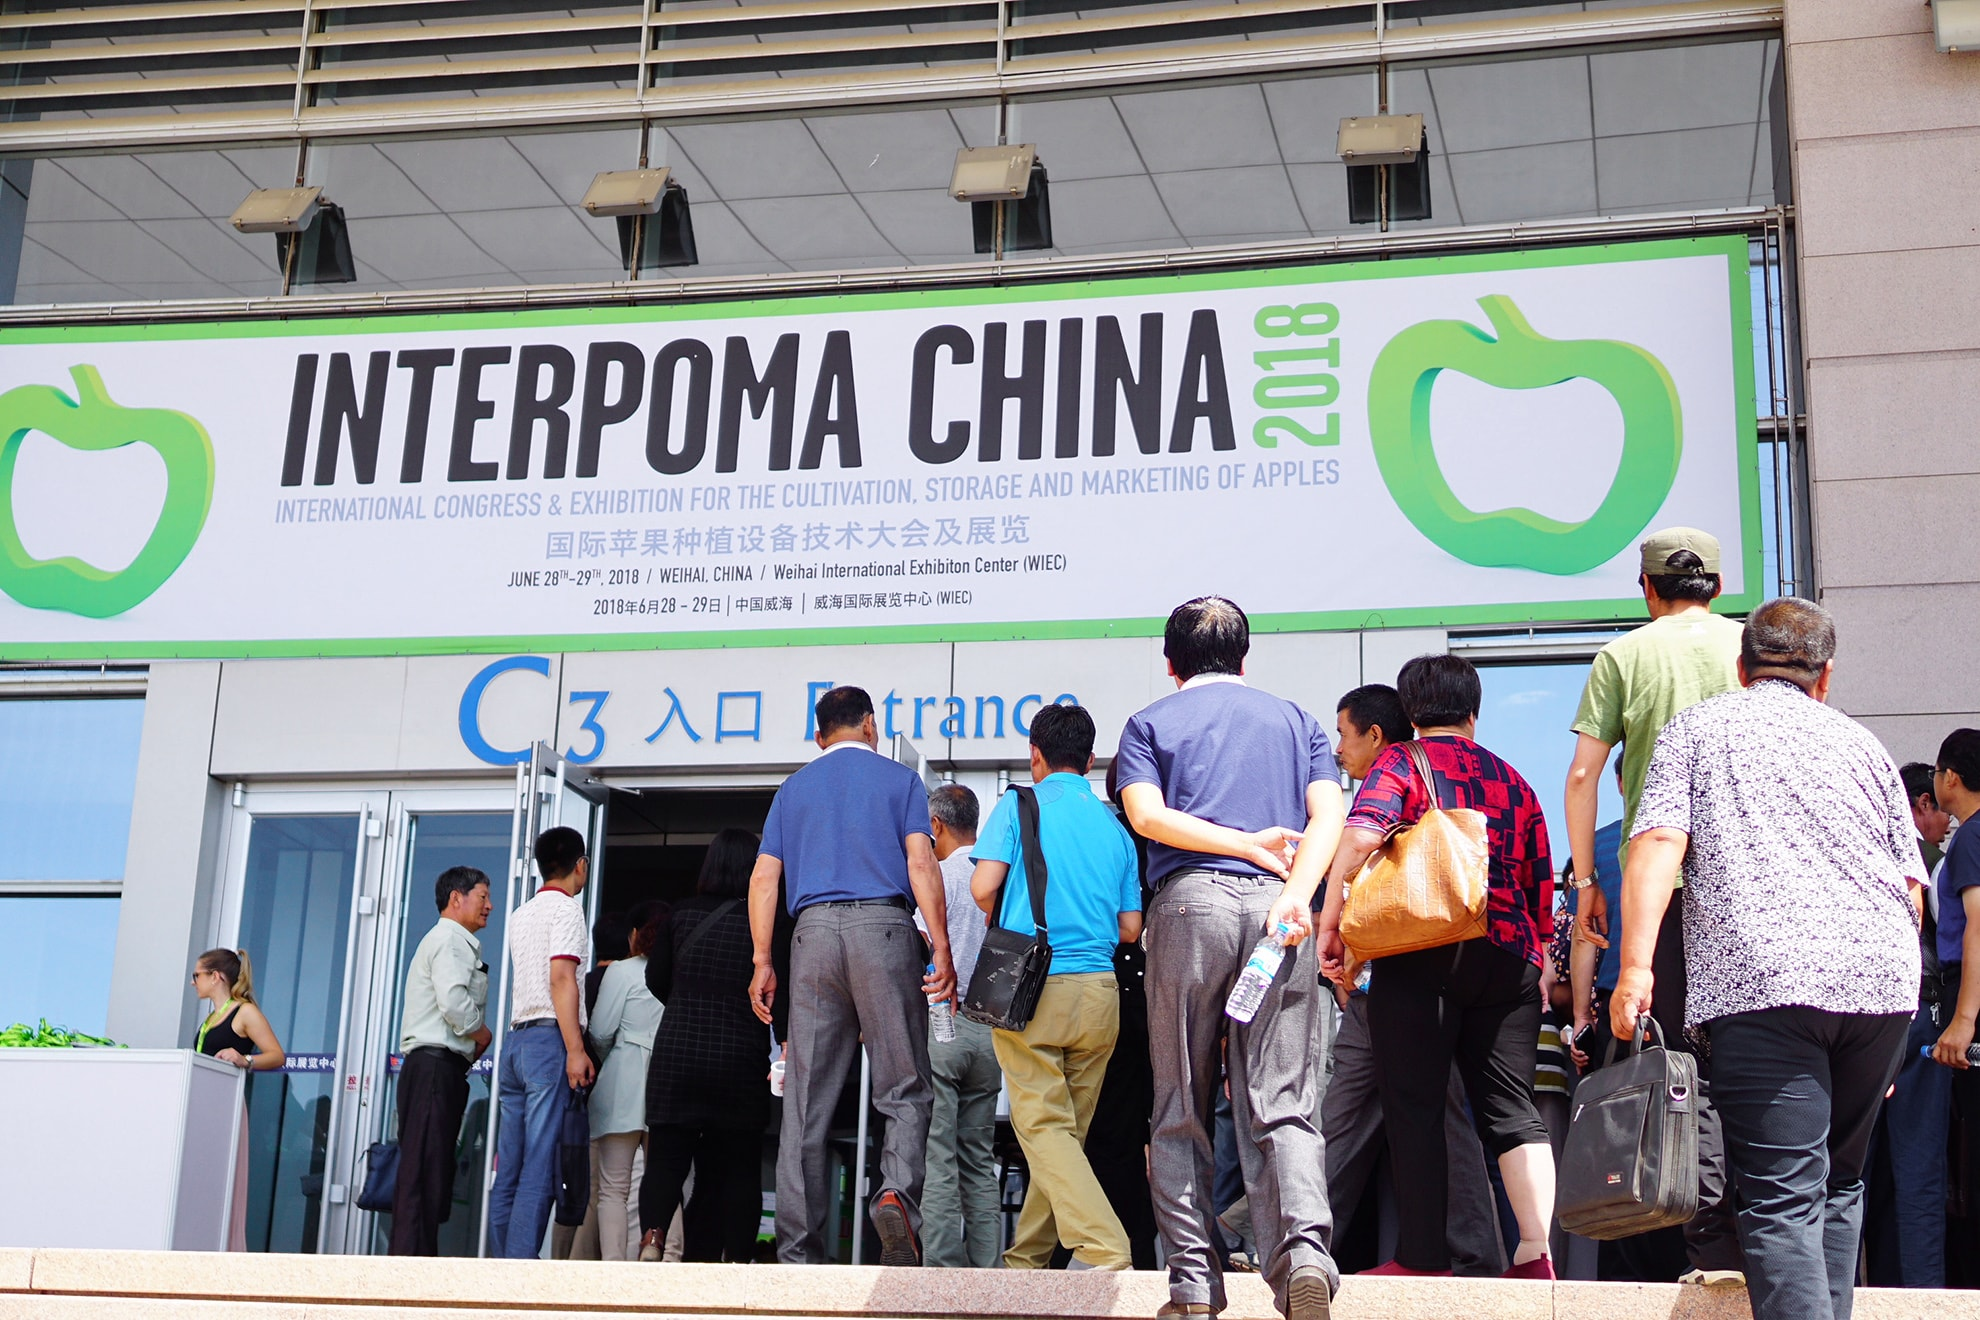 INTERPOMA CHINA 2018 International Congress & Exhibition rallies for the modernization of apple cultivation in China